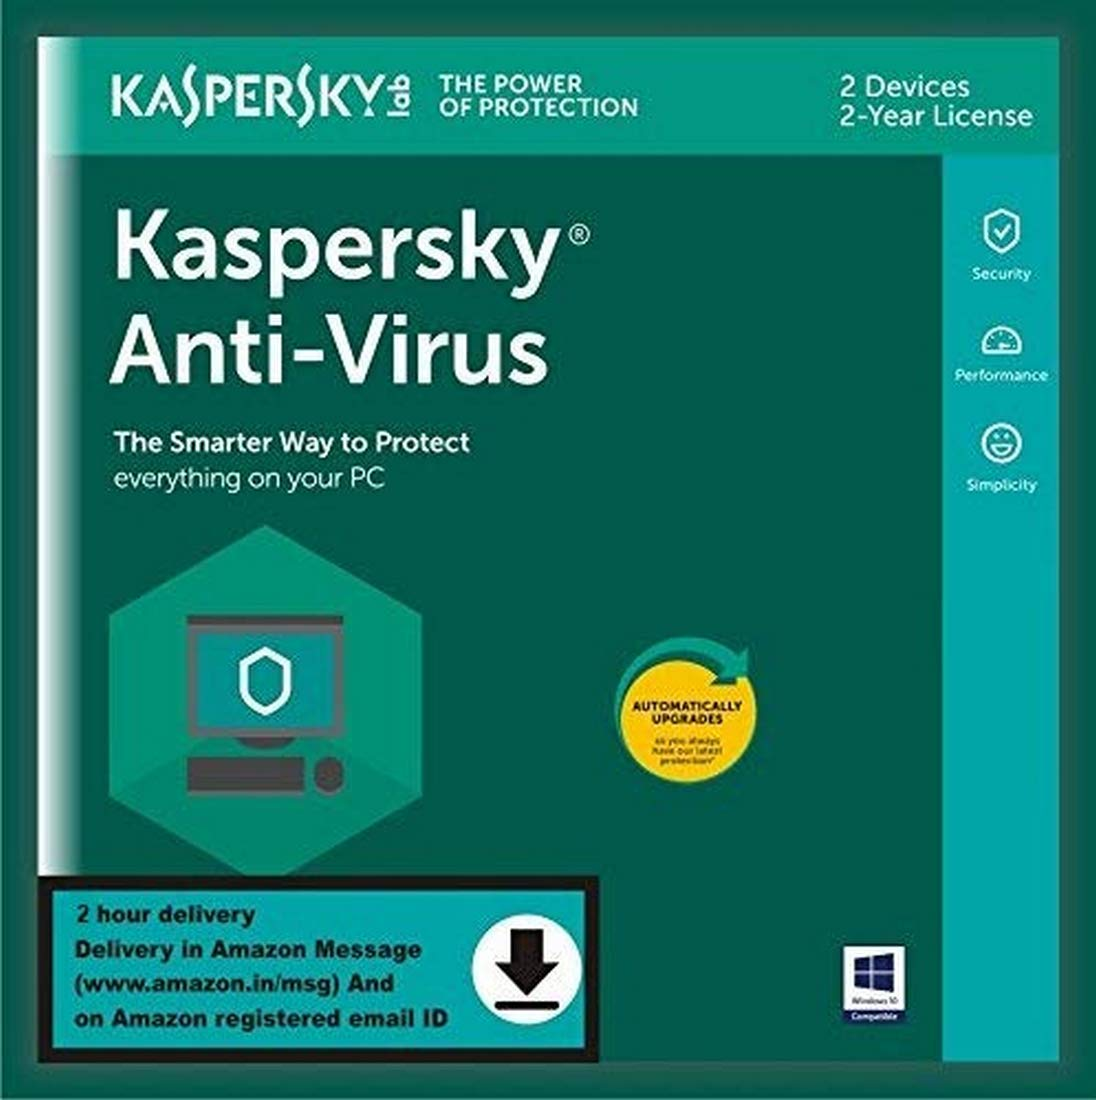 Kaspersky Anti-Virus 2020 Latest Version - 2 Users, 2 Years (Single Key) (Code emailed in 2 Hours - No CD): Amazon.in: Software